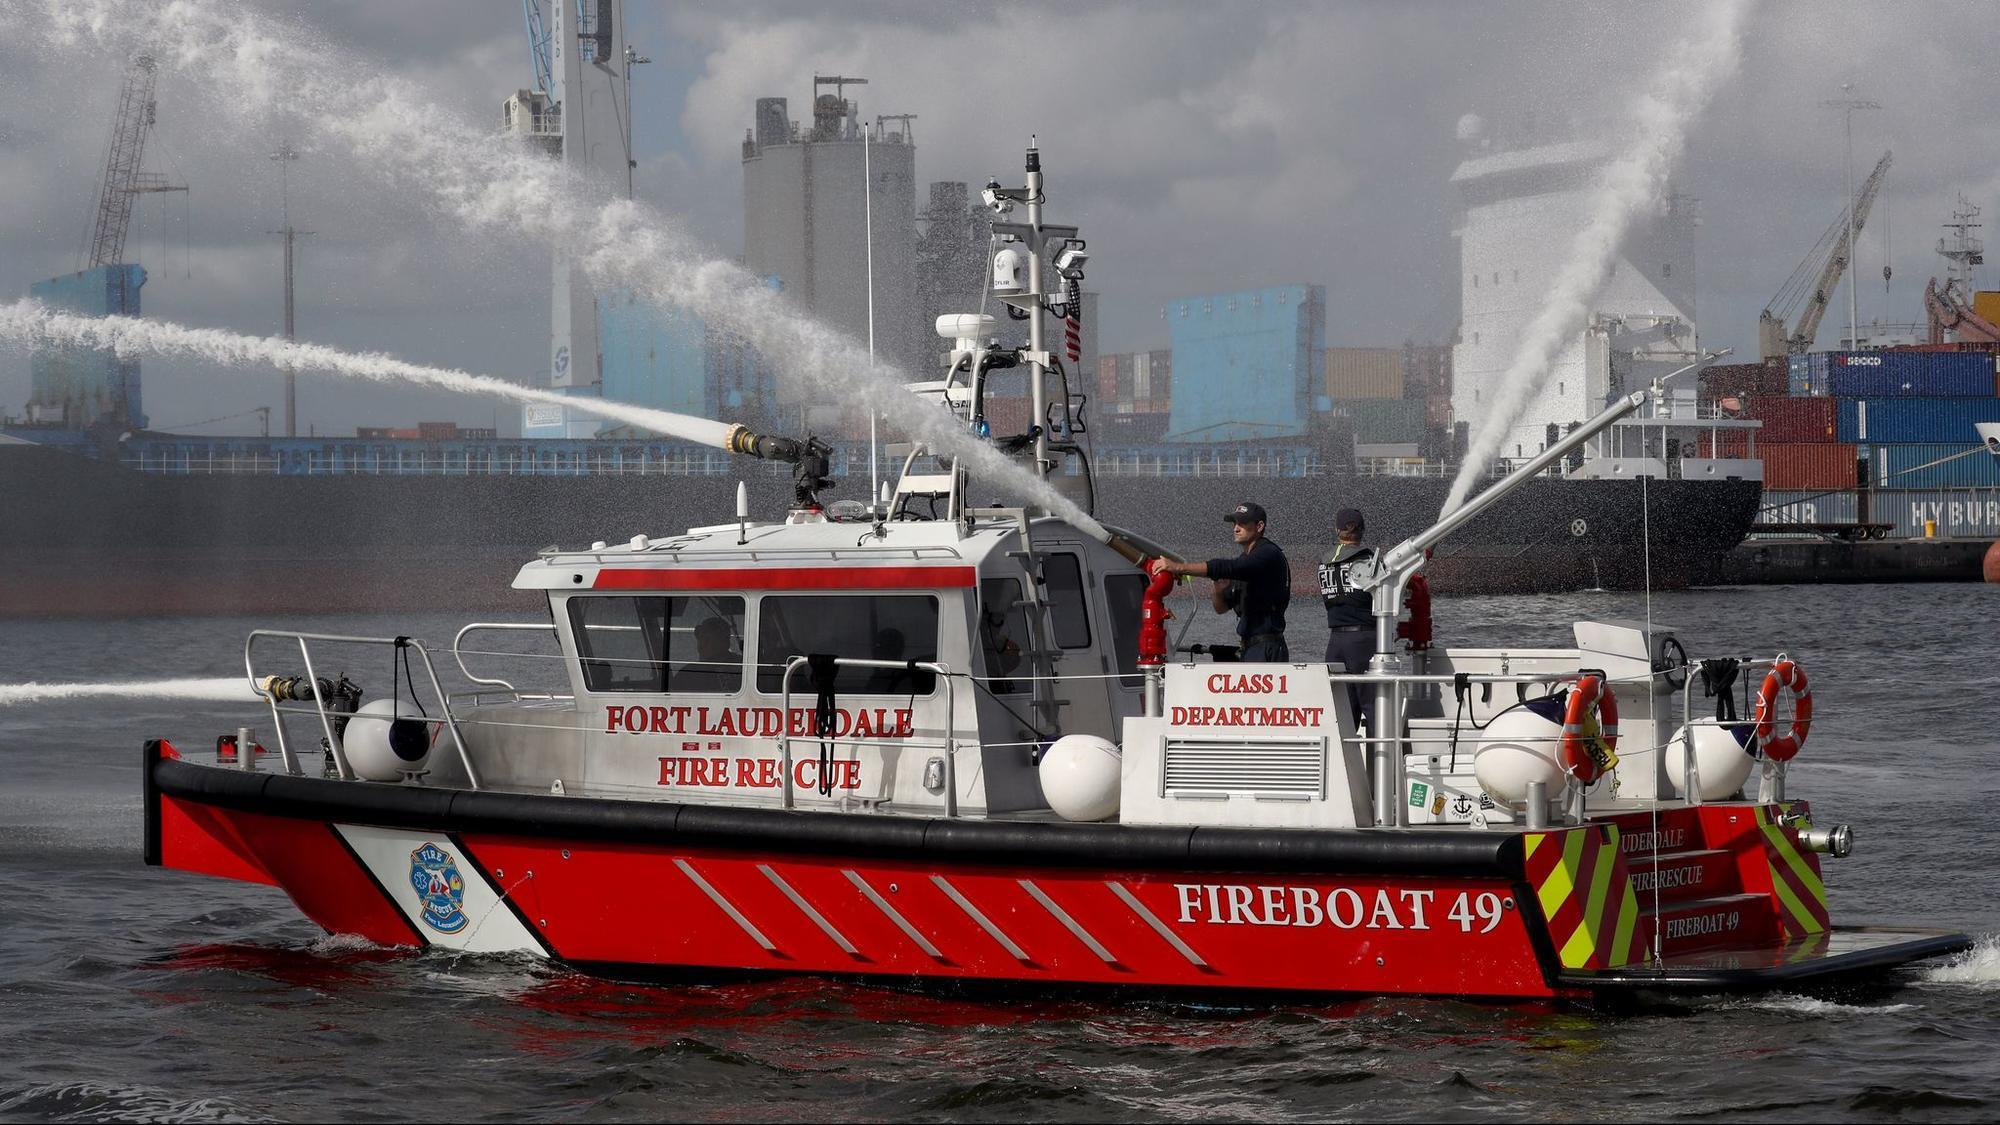 Fort Lauderdale Upgrades Its Water Response With Fireboat